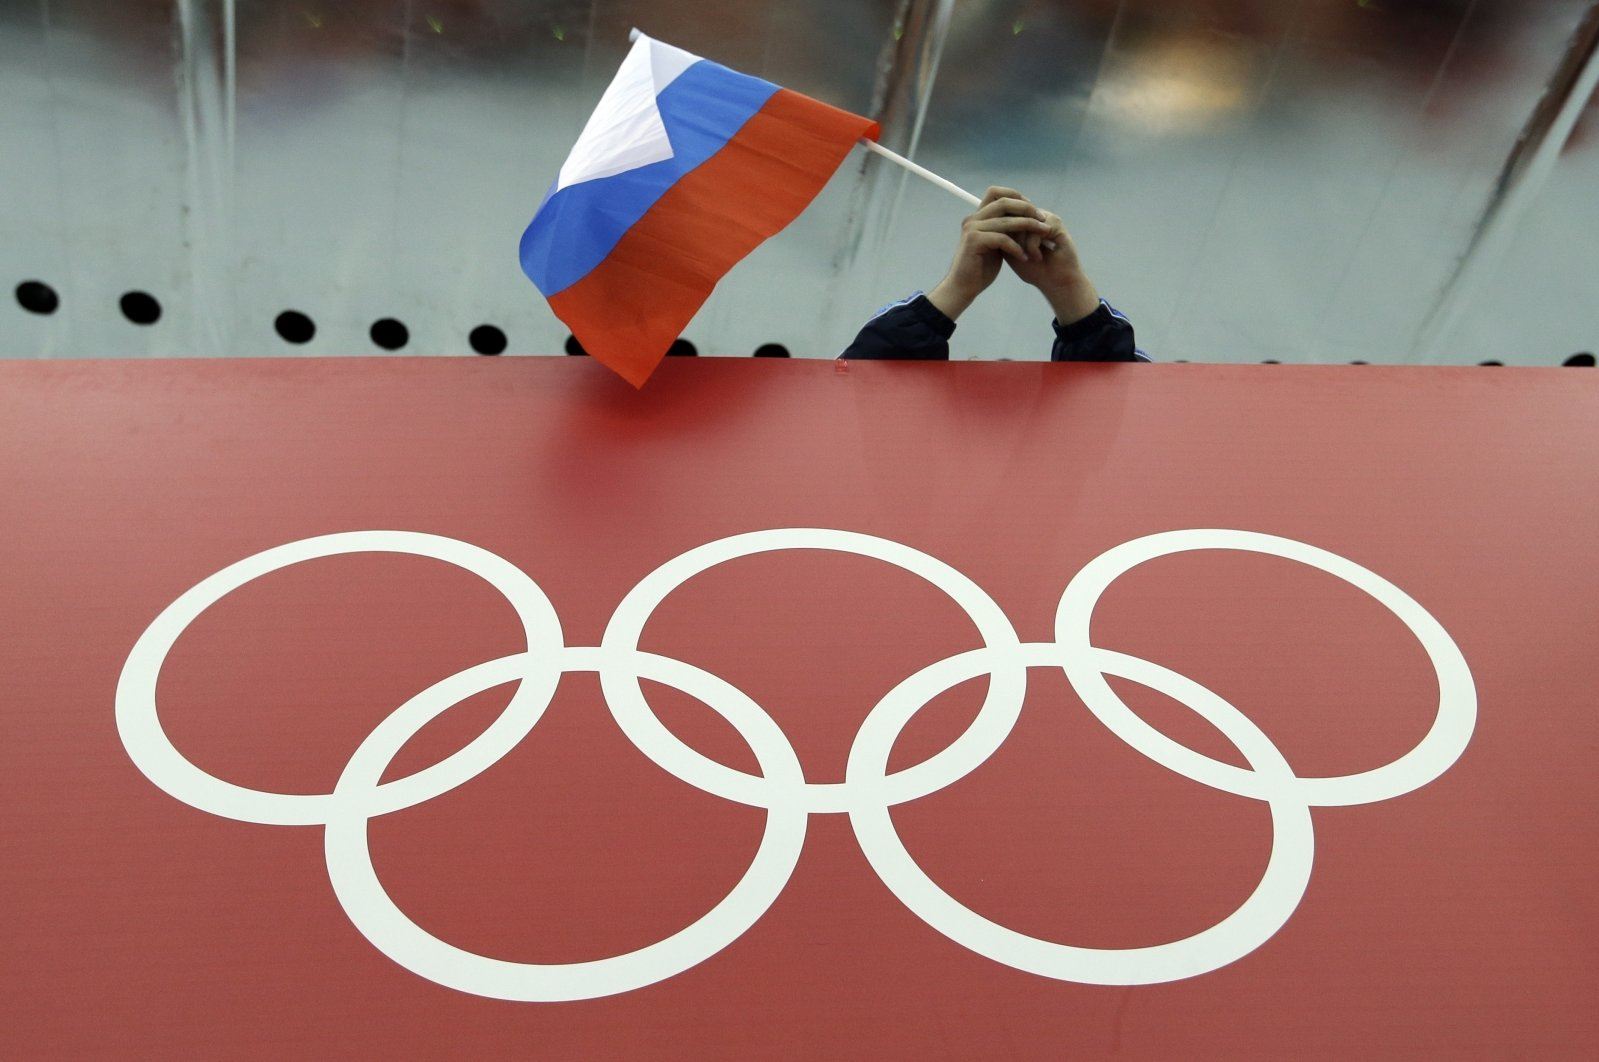 A Russian skating fan holds the country's national flag over the Olympic rings before the men's 10,000-meter speedskating race during the Winter Olympics in Sochi, Russia, Feb. 18, 2014. (AP Photo)